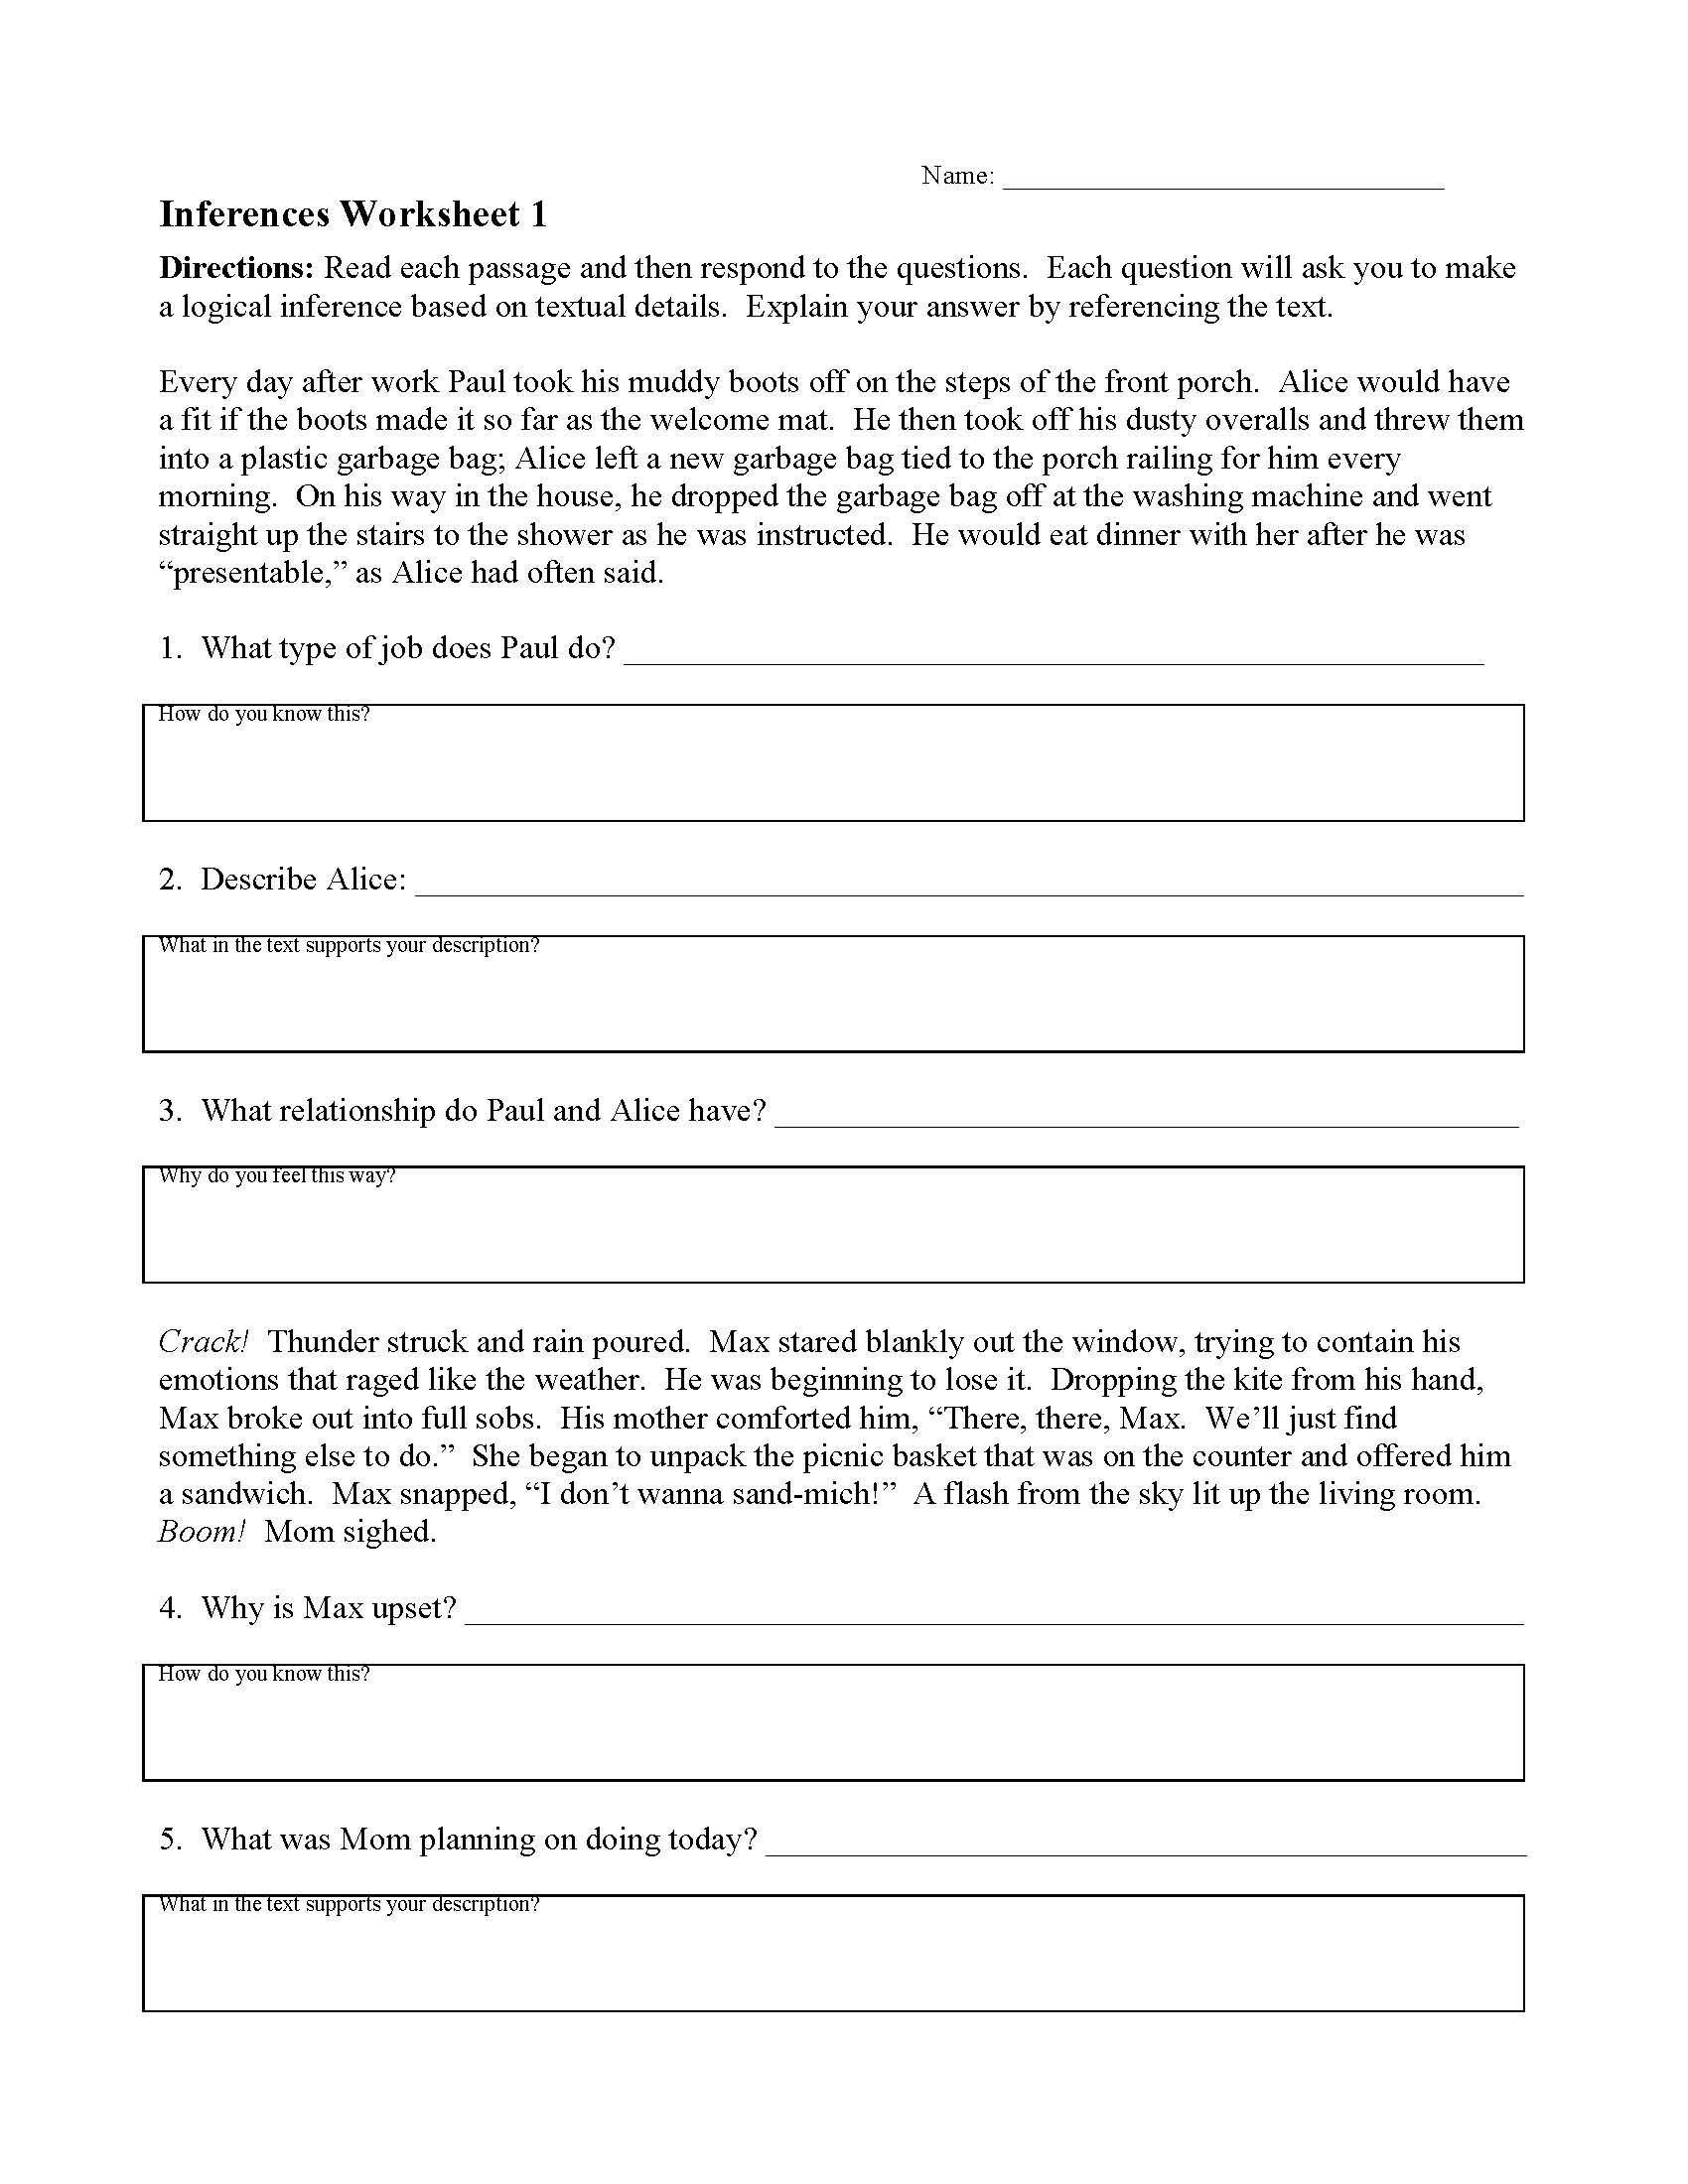 Citing Textual Evidence Worksheet Inferences Worksheets